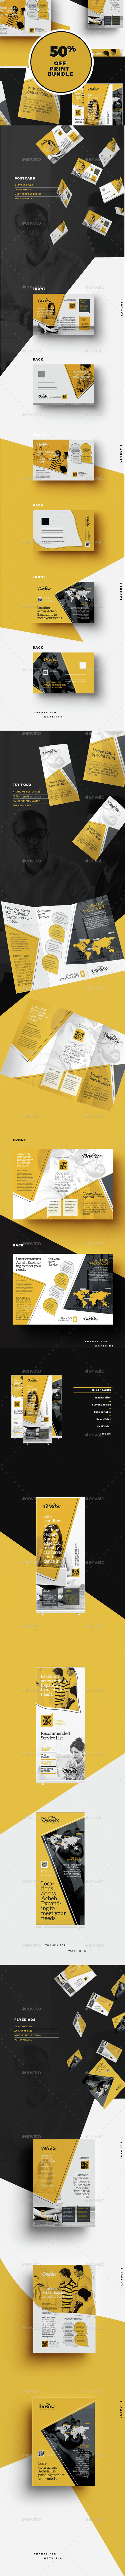 Marketing Promotion Bundle - Print Templates